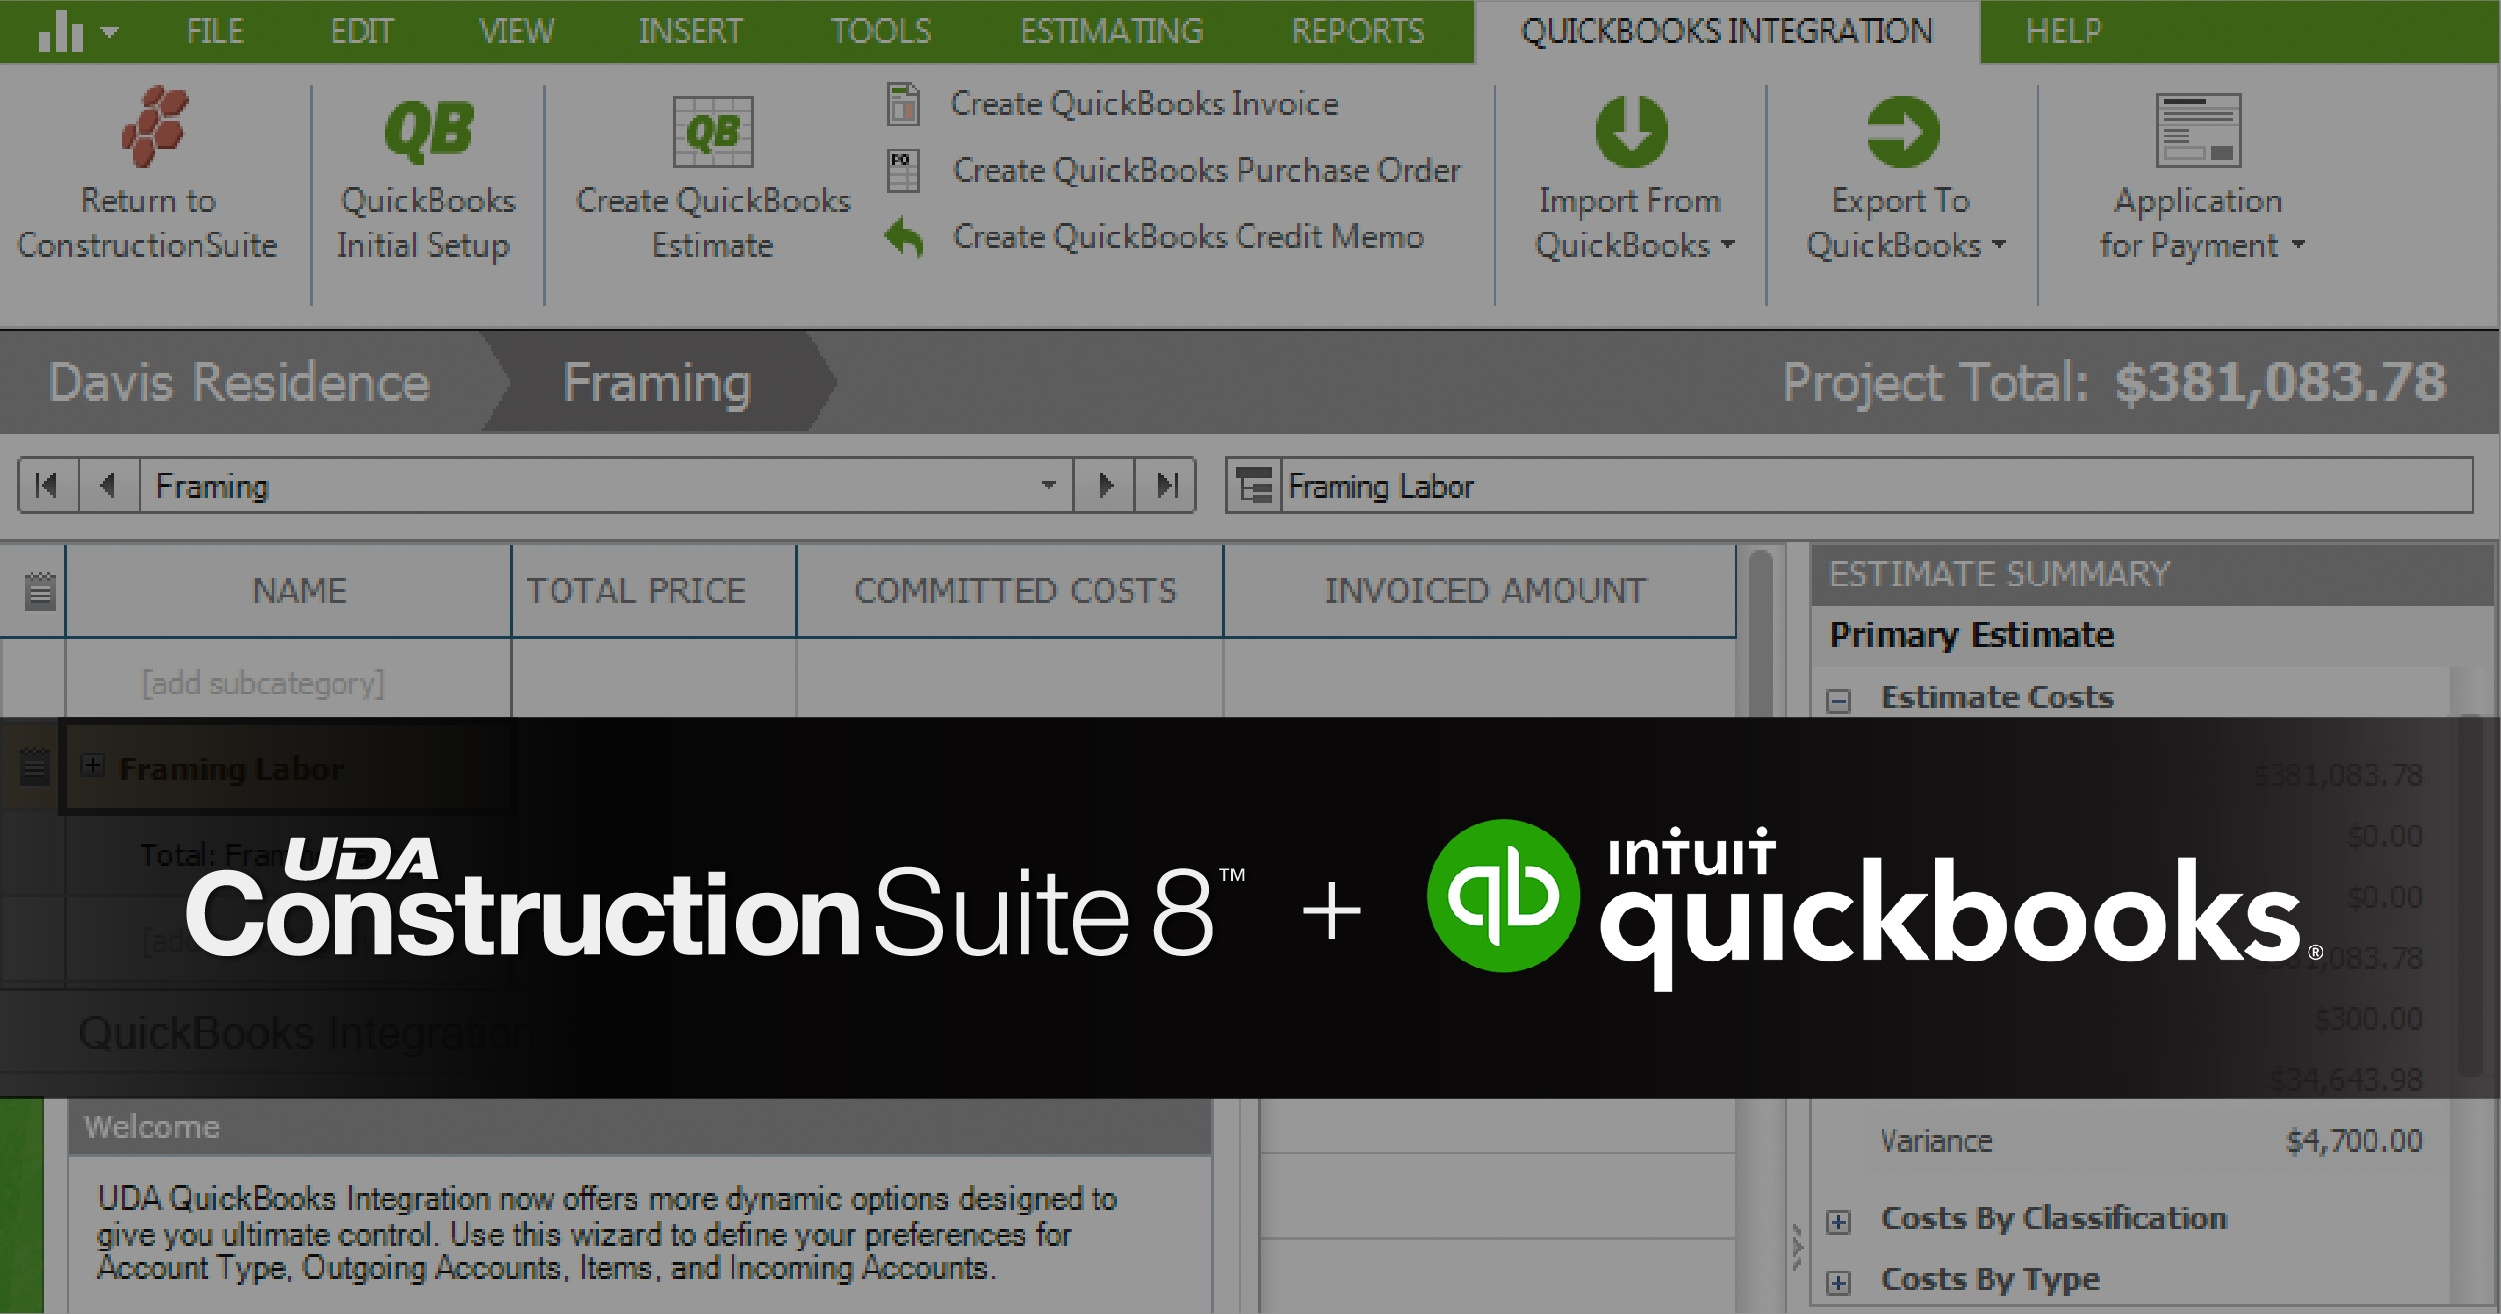 ConstructionSuite 8 + QuickBooks Integration: 2018 Compatibility Update